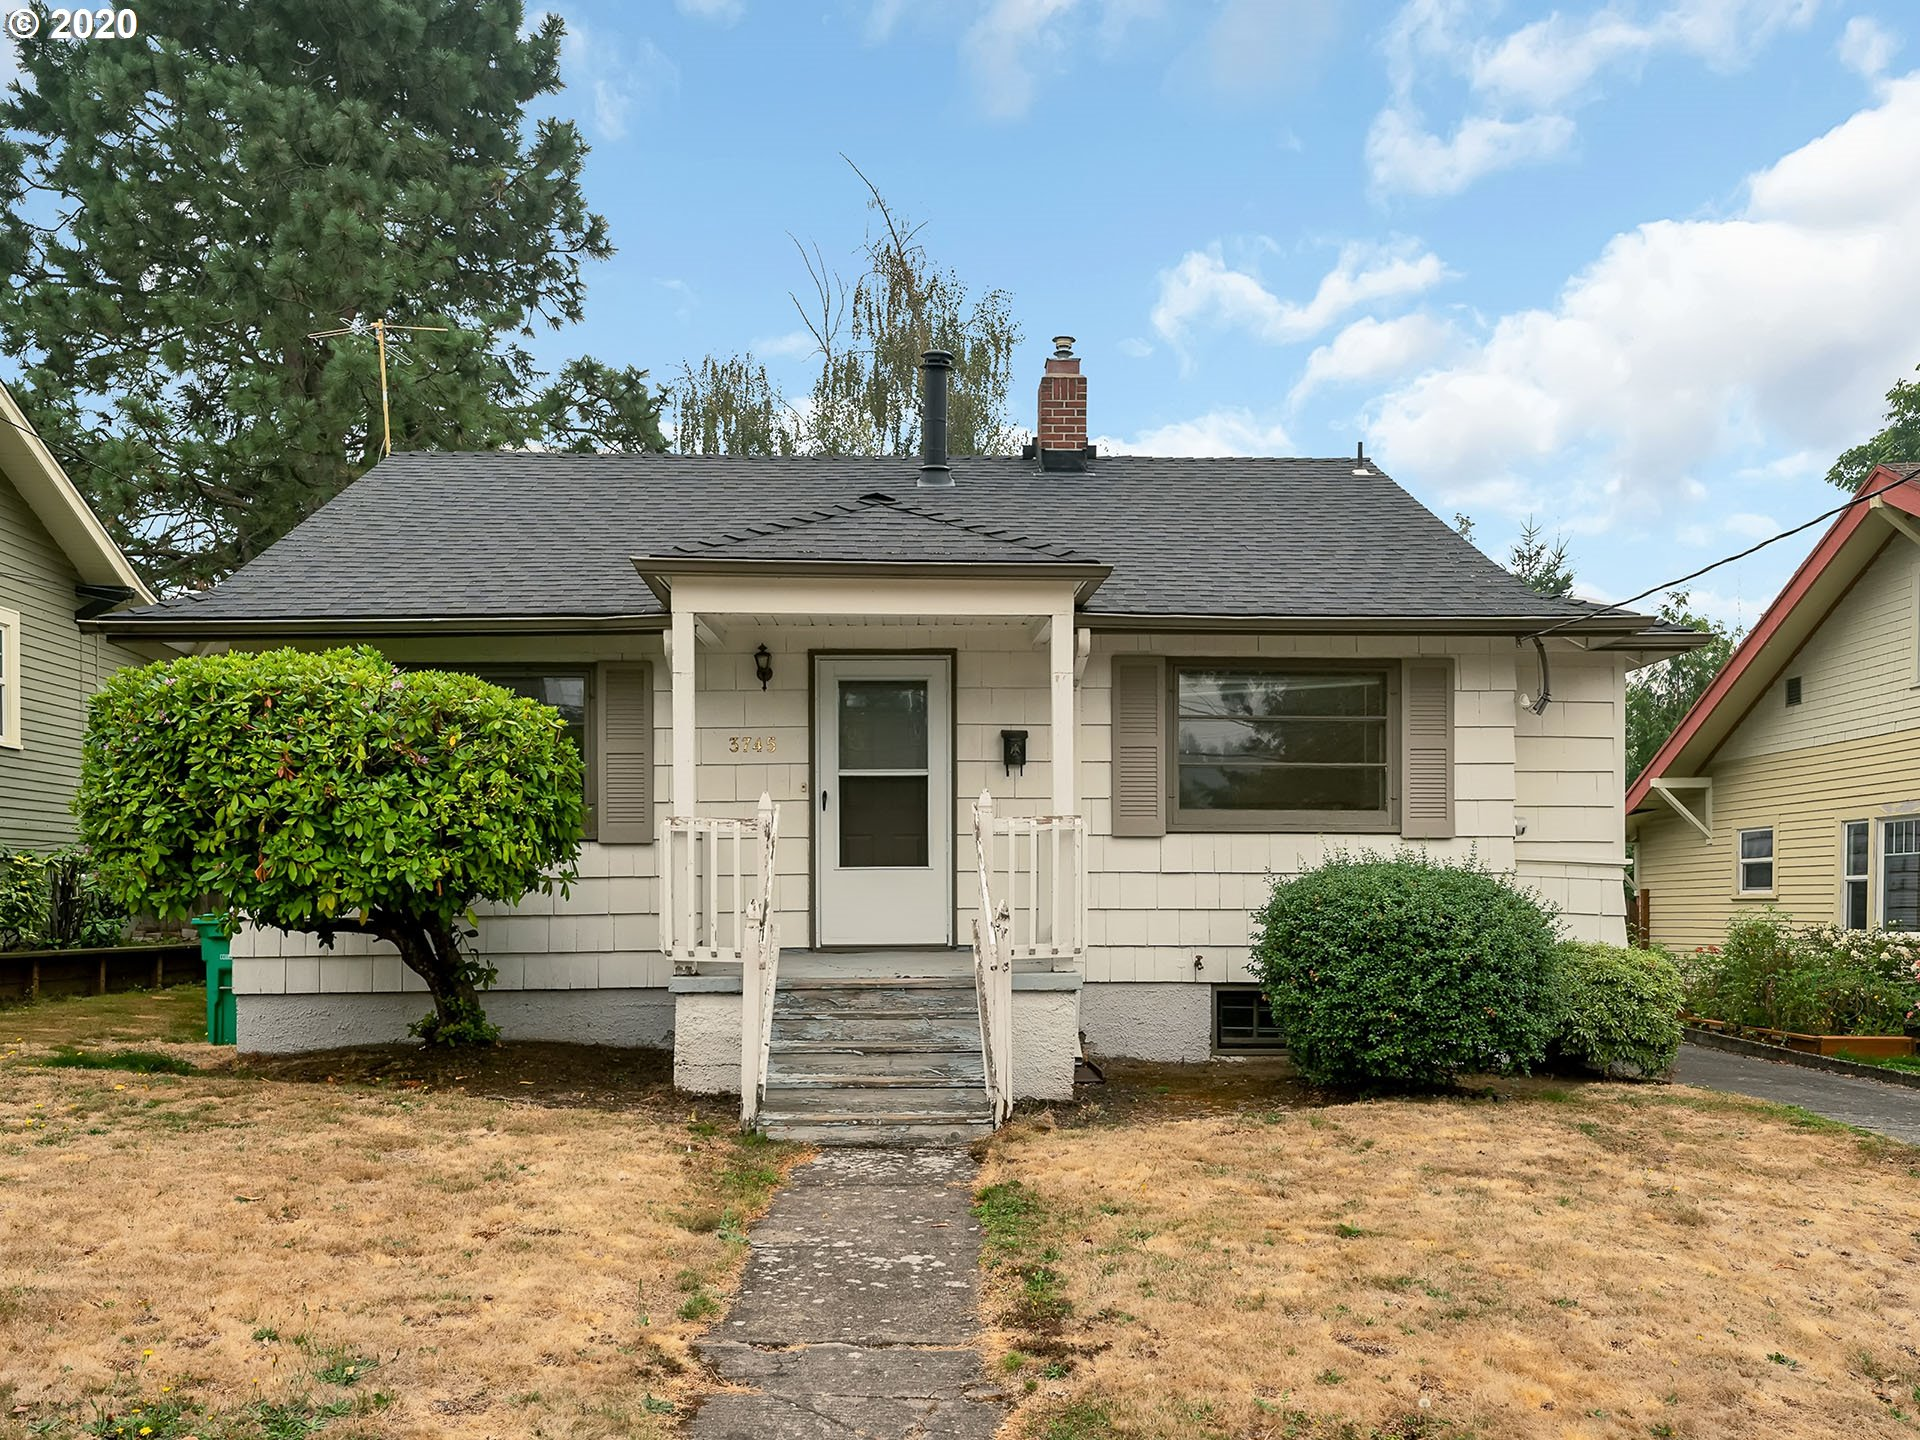 Vintage 1925 Cottage on a beautiful street. Great Starter or Rental! Needs love but good roof, furnace, water heater, everything works, vintage kitchen with eating area, storm windows, detached garage, great back yard, If your looking for a sweat equity project check this one out. Builders; flat lot R2.5 zoning.